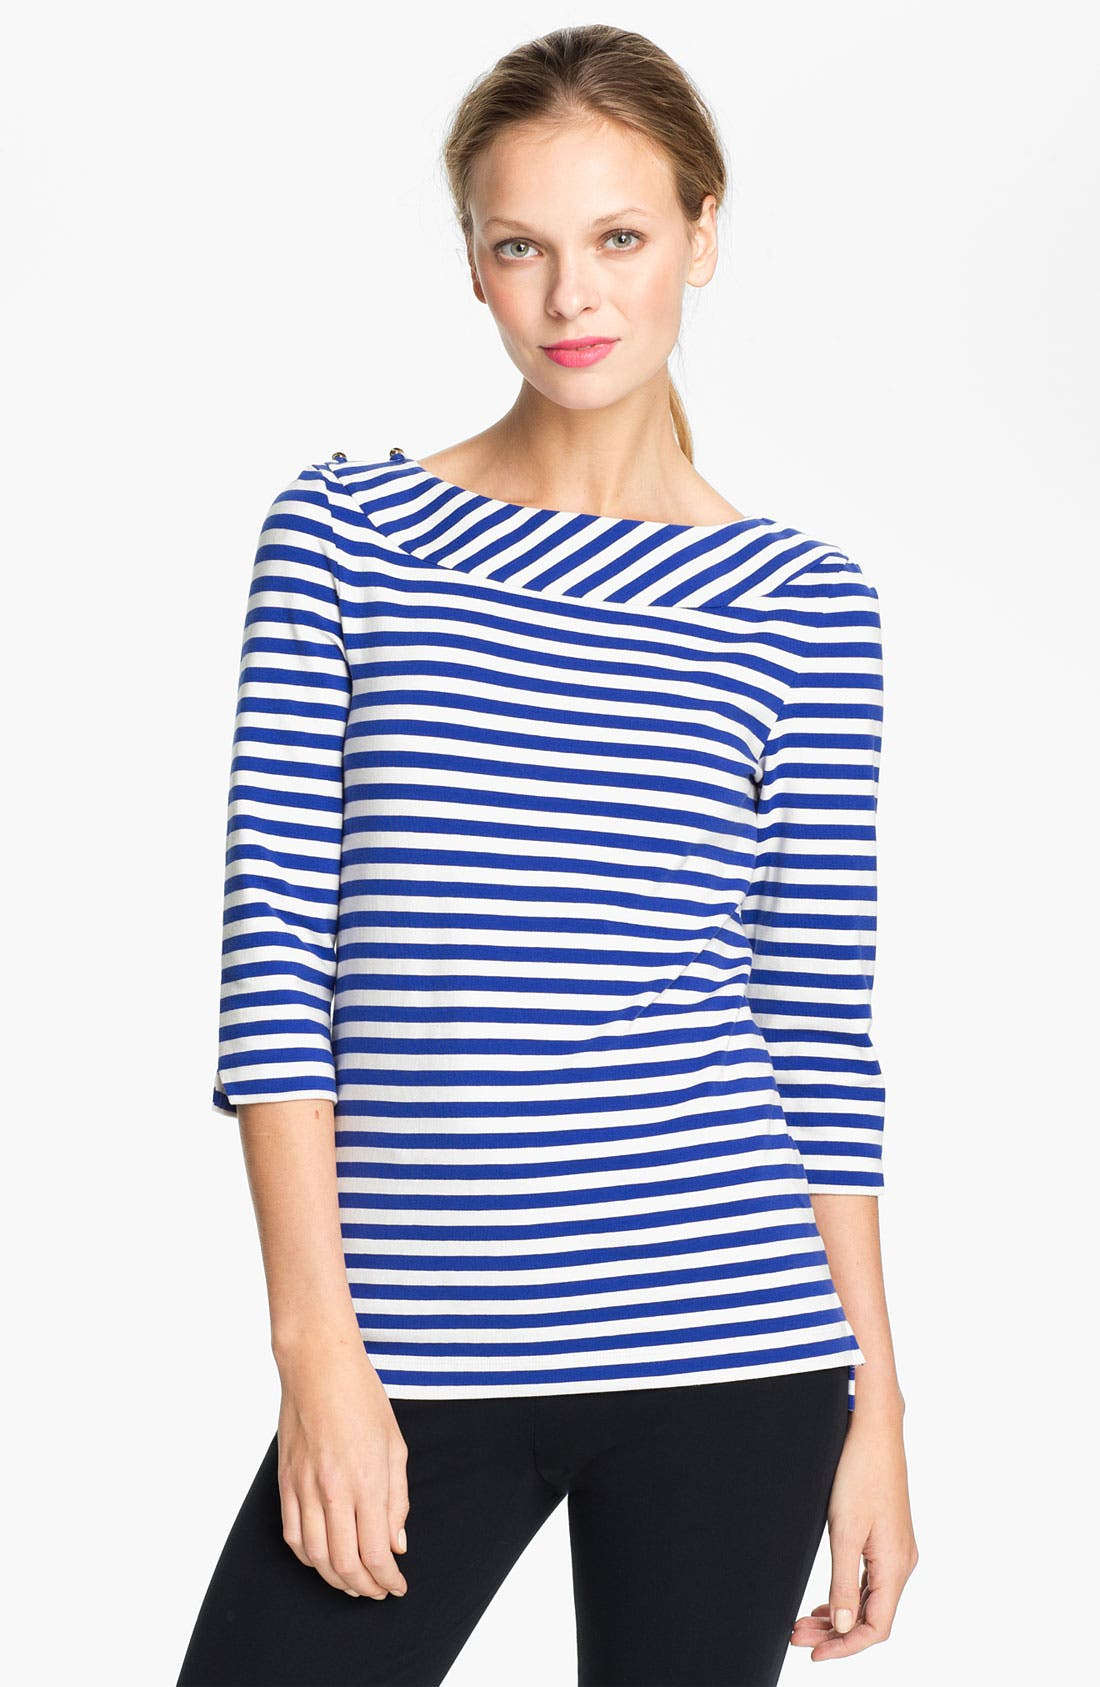 Alternate Image 1 Selected - kate spade new york 'shantie' stripe top